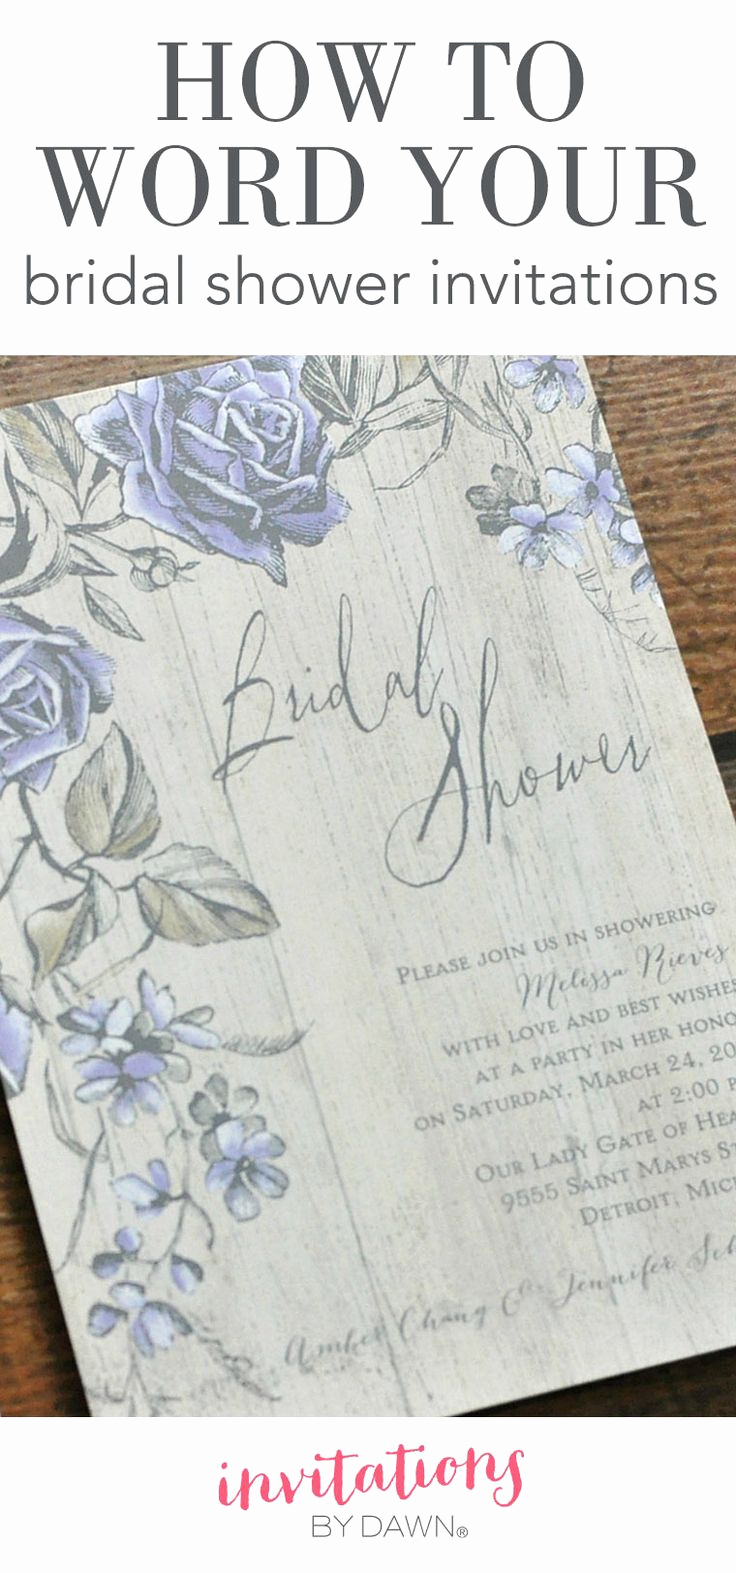 Honeymoon Shower Invitation Wording New Best 25 Bridal Shower Invitation Wording Ideas On